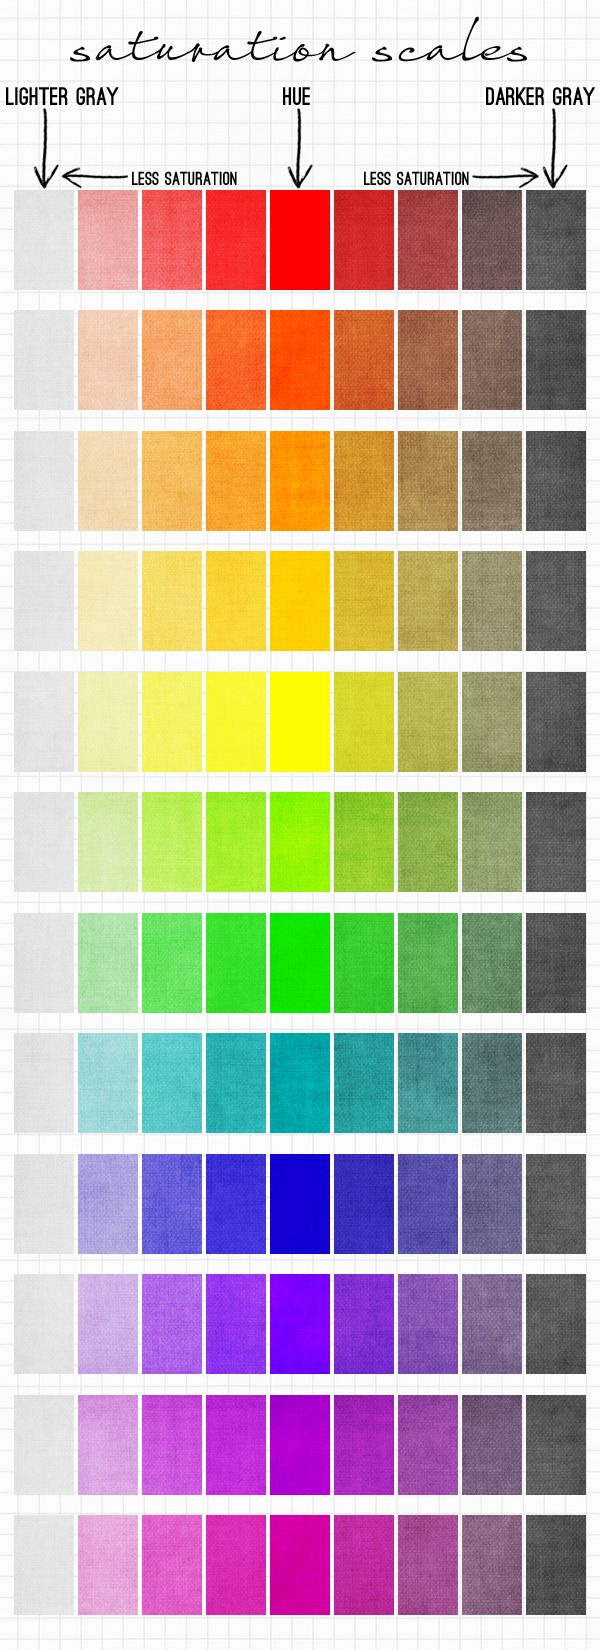 Brandi Hussey's saturation scale shows what happens if you add either light gray or dark gray to a pure hue.